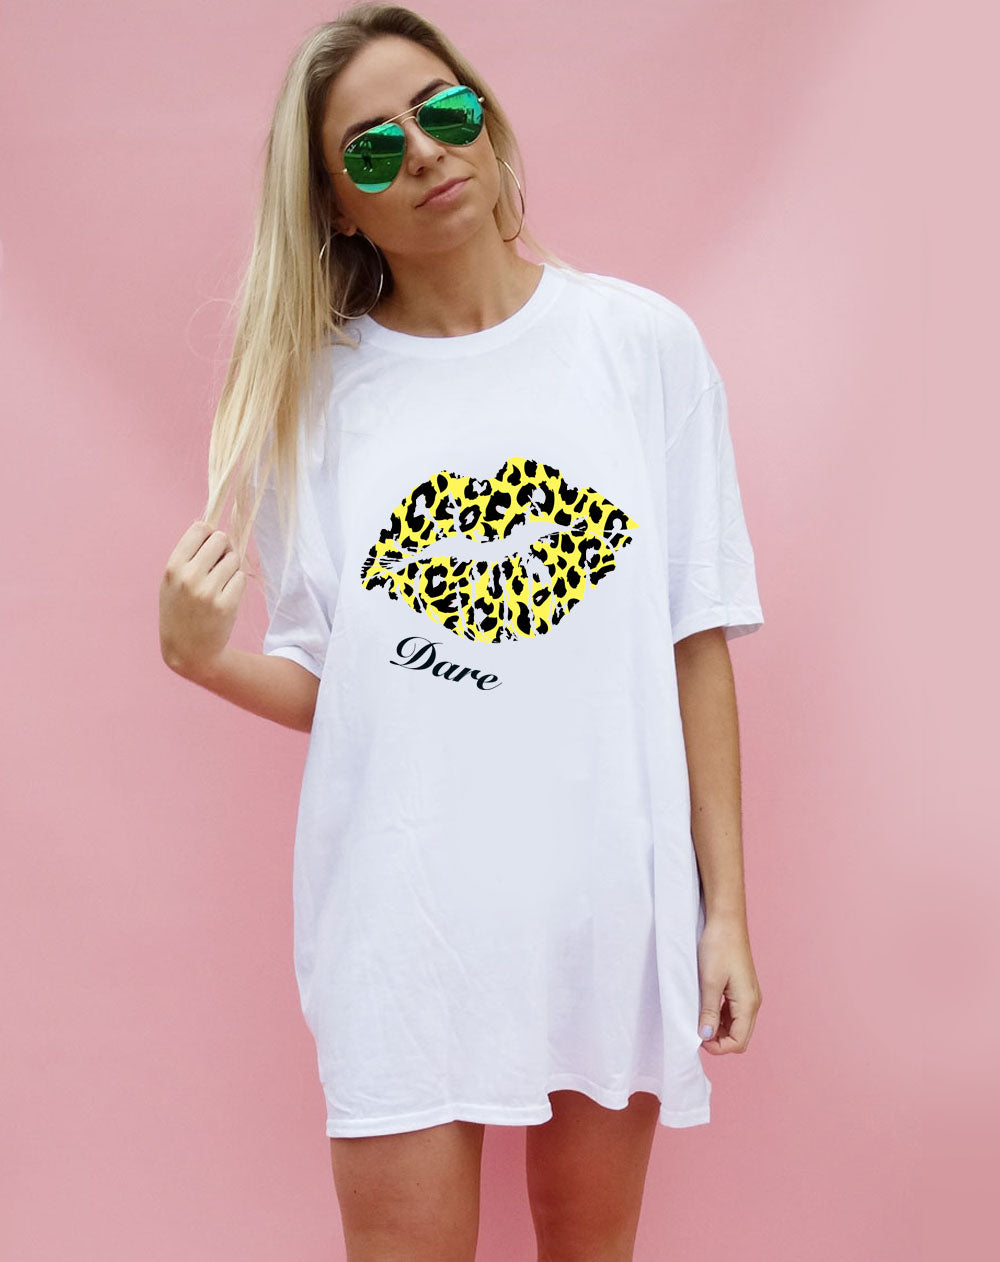 Yellow and Black Dare Leopard Lip Oversize Tshirt Dress